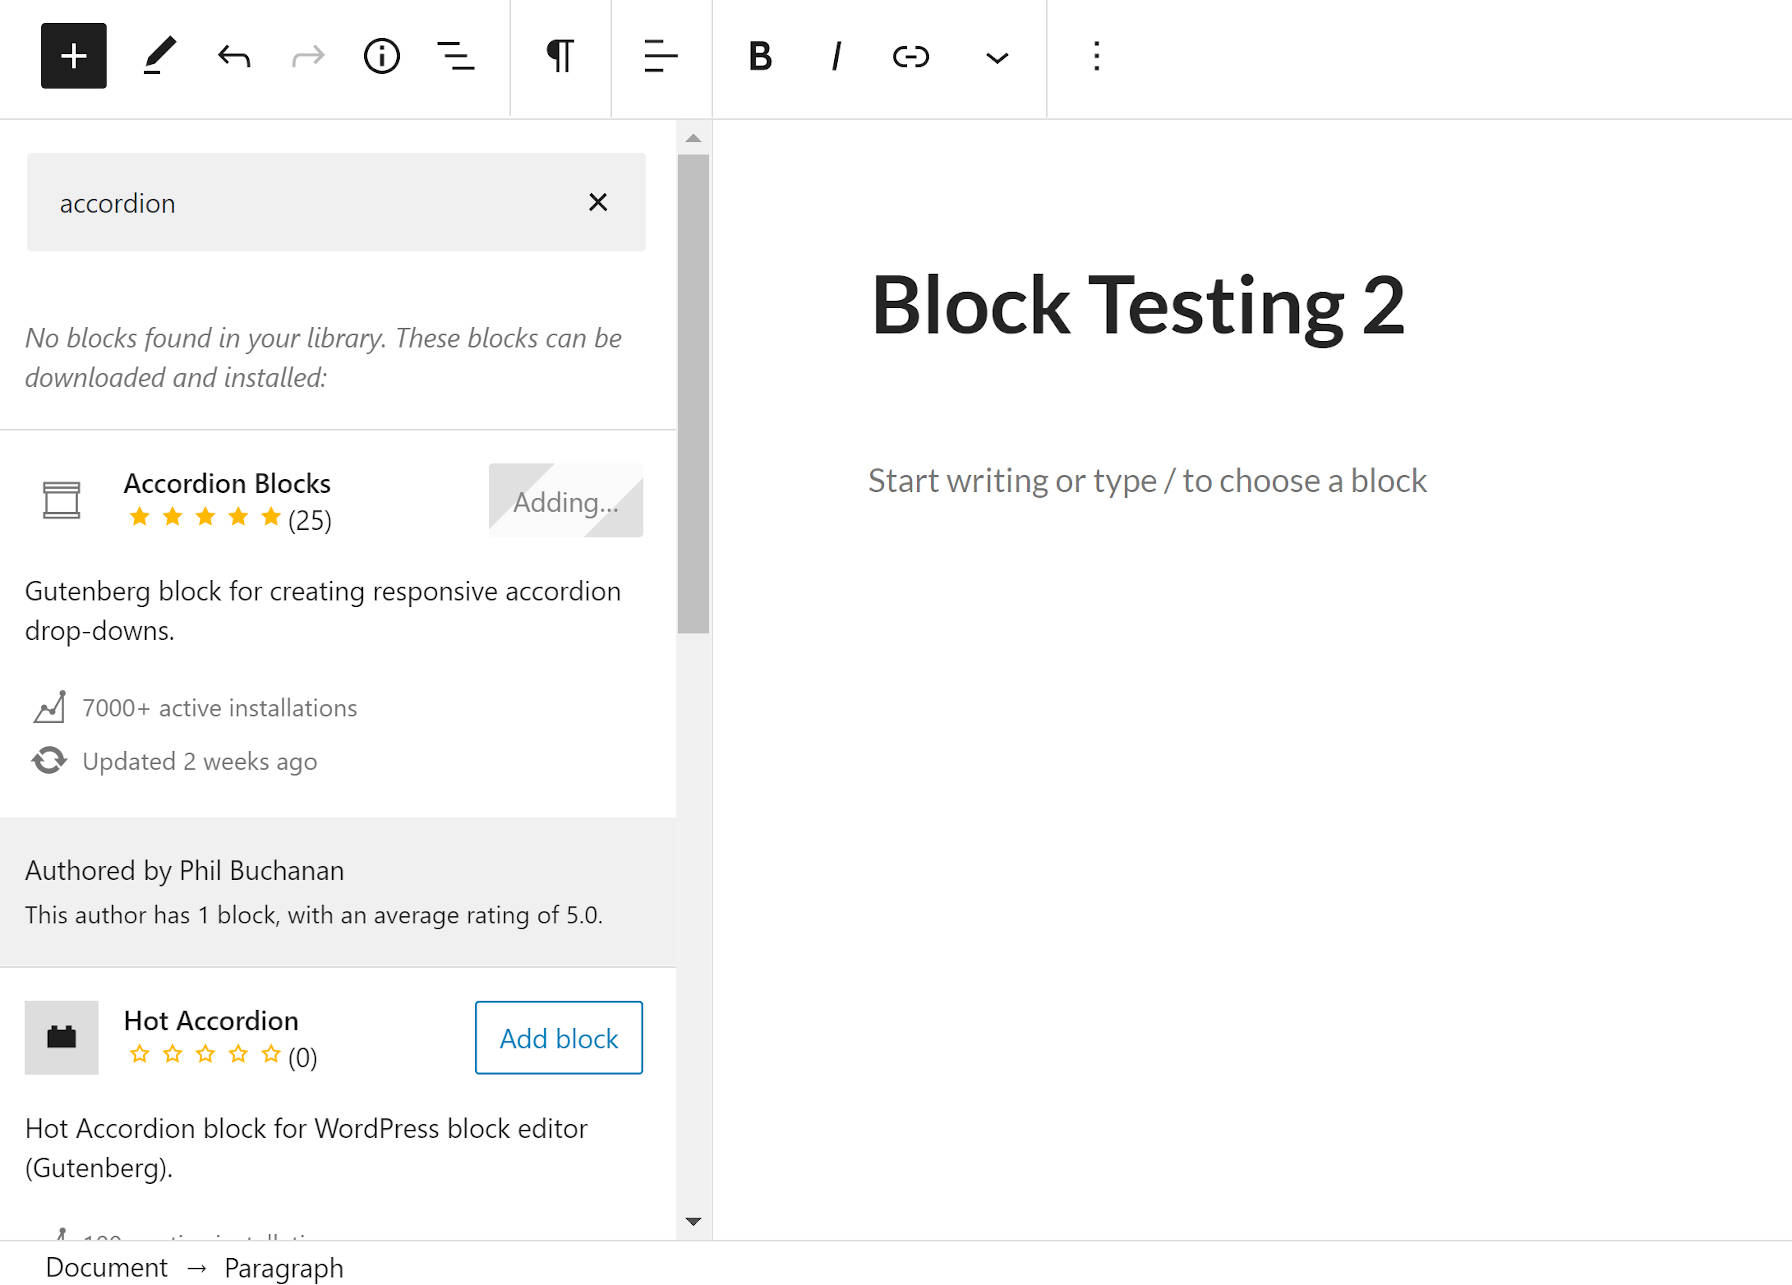 Searching for and installing a single-use block directly from the WordPress editor.